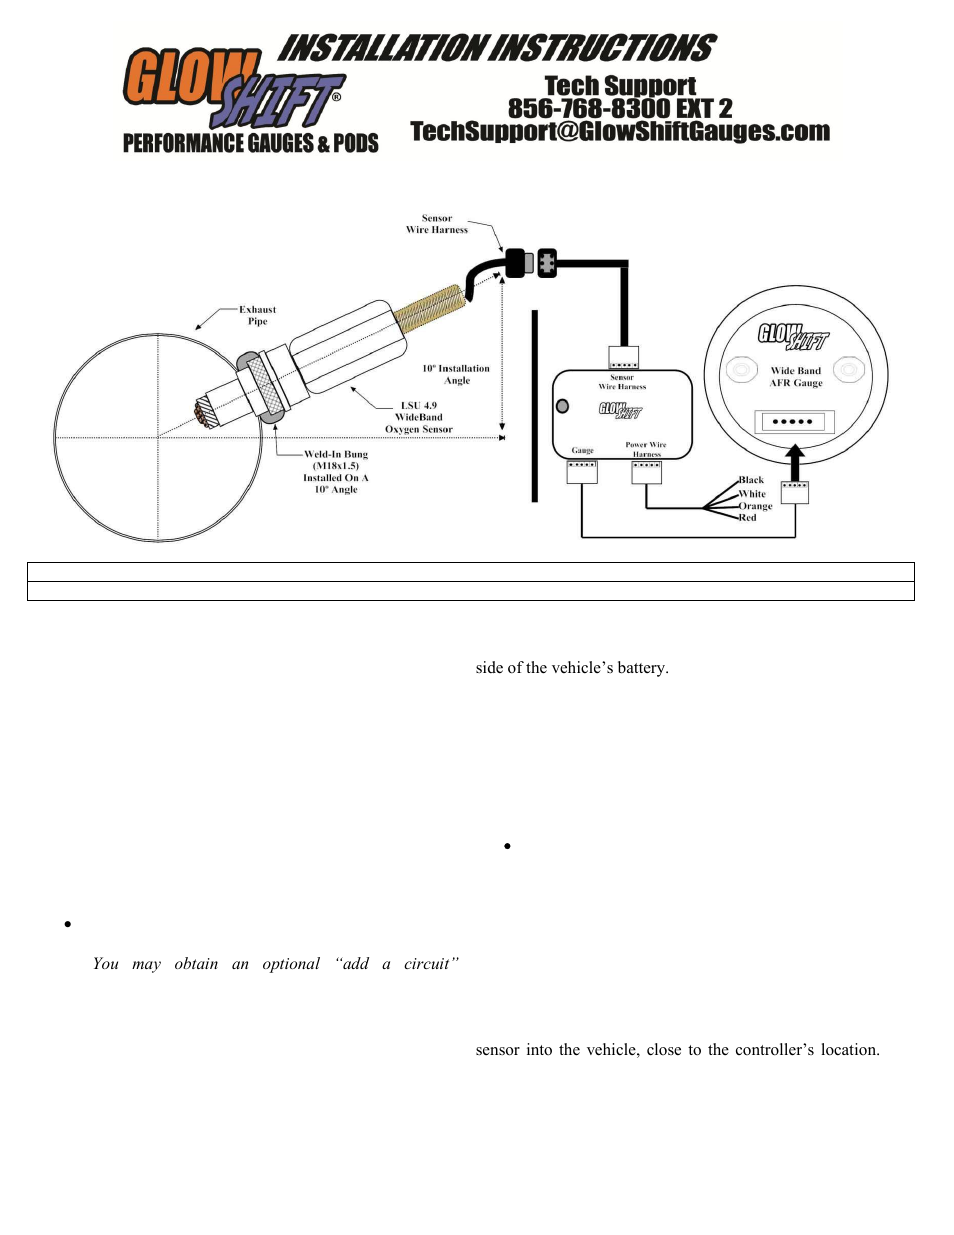 Air Fuel Gauge Wiring Great Design Of Diagram Subaru Forester O2 Sensor Diagrams Glowshift Tinted Series Wideband Ratio User Aem Install Installation Instructions